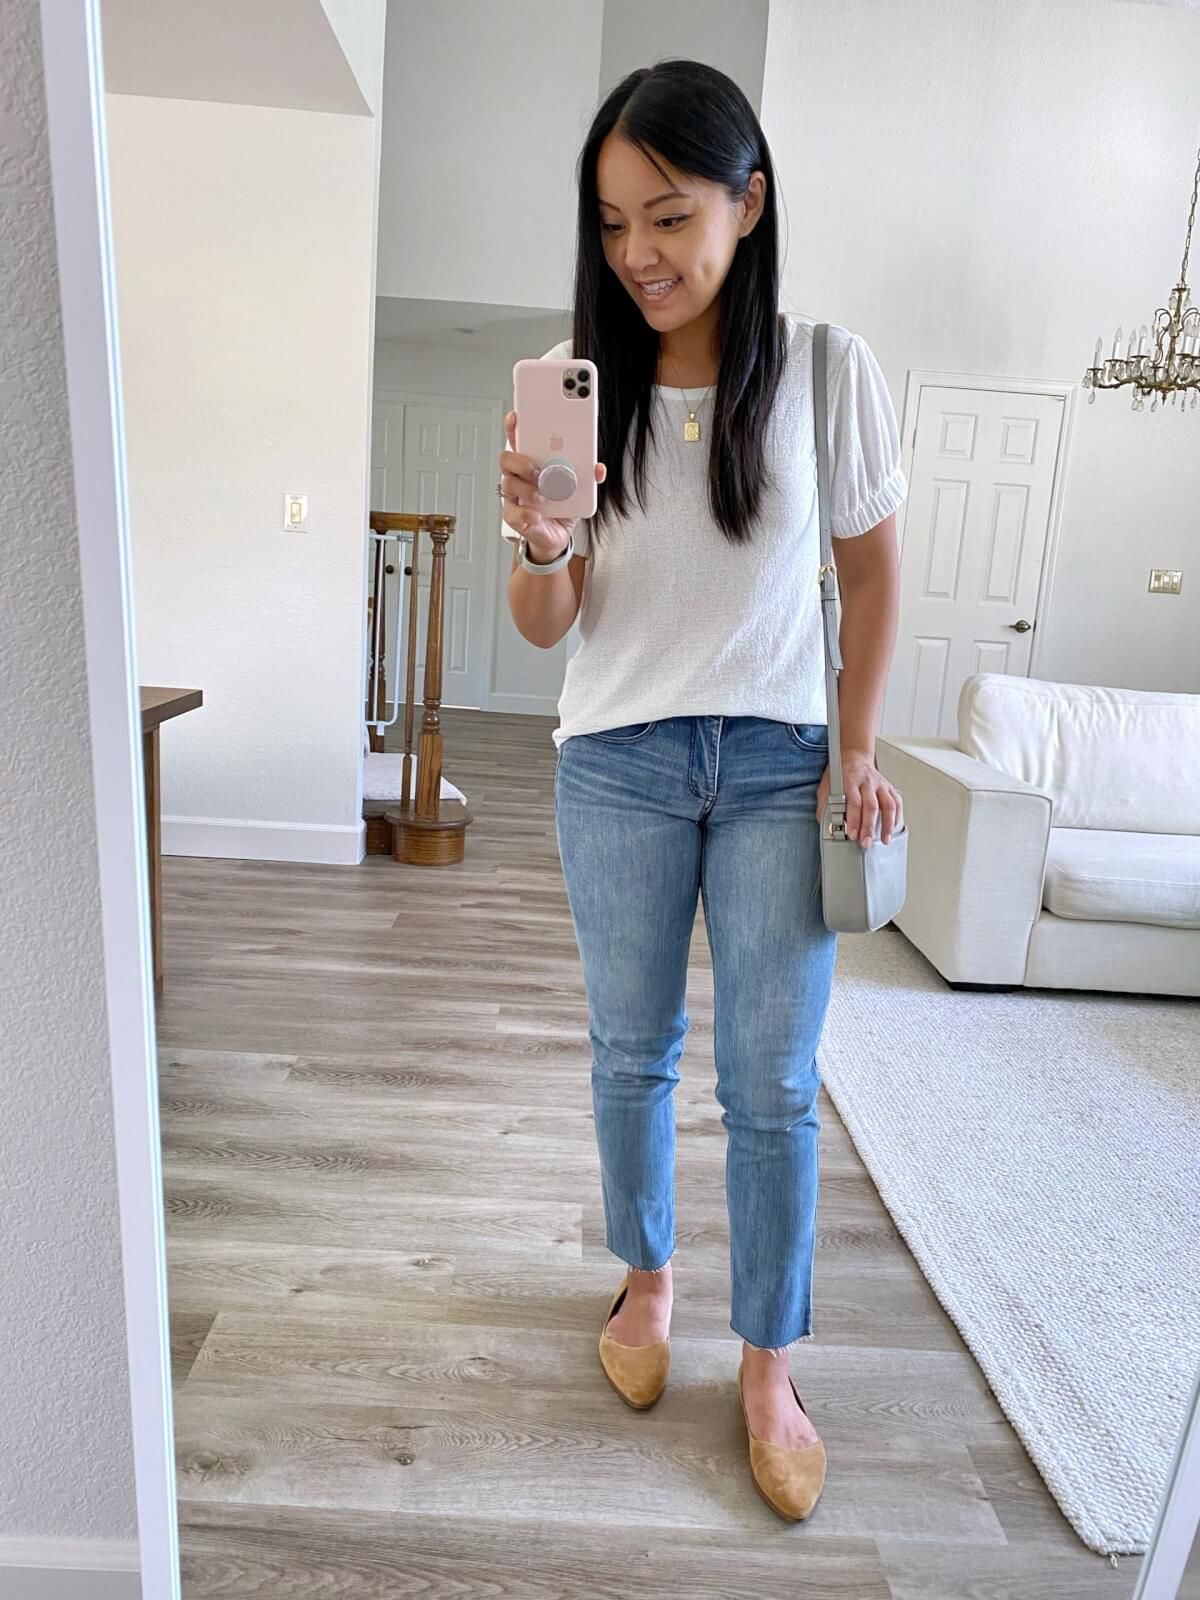 Summer to Fall Transition Nicer Casual Outfit: white puff sleeve t-shirt + light wash straight leg jeans + tan suede flats + gold pendant necklace + gray crossbody purse